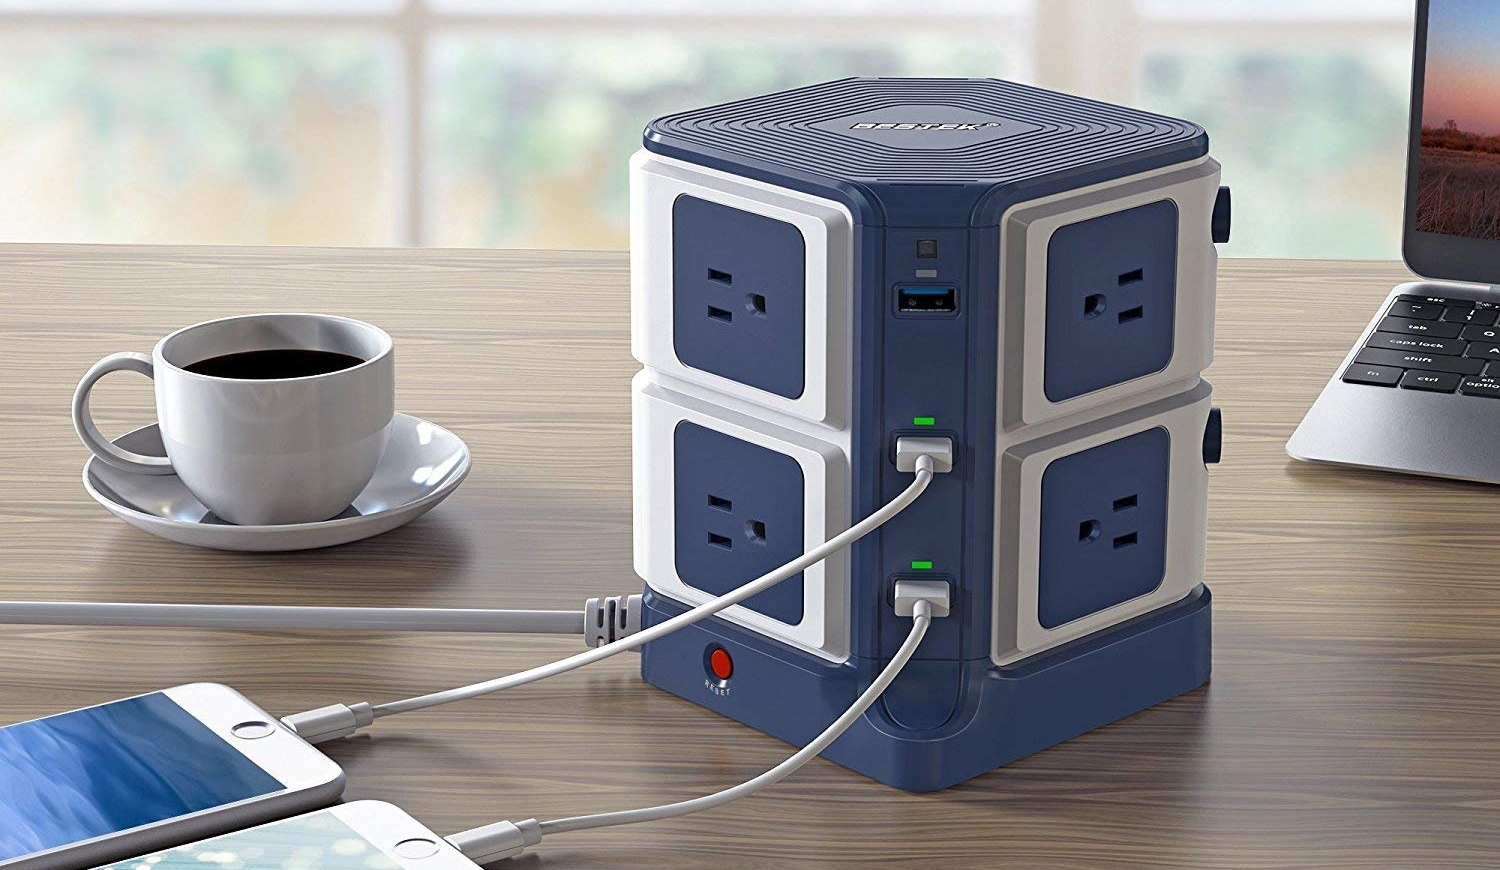 bestek, charging tower, surge protector, outlets, usb power,